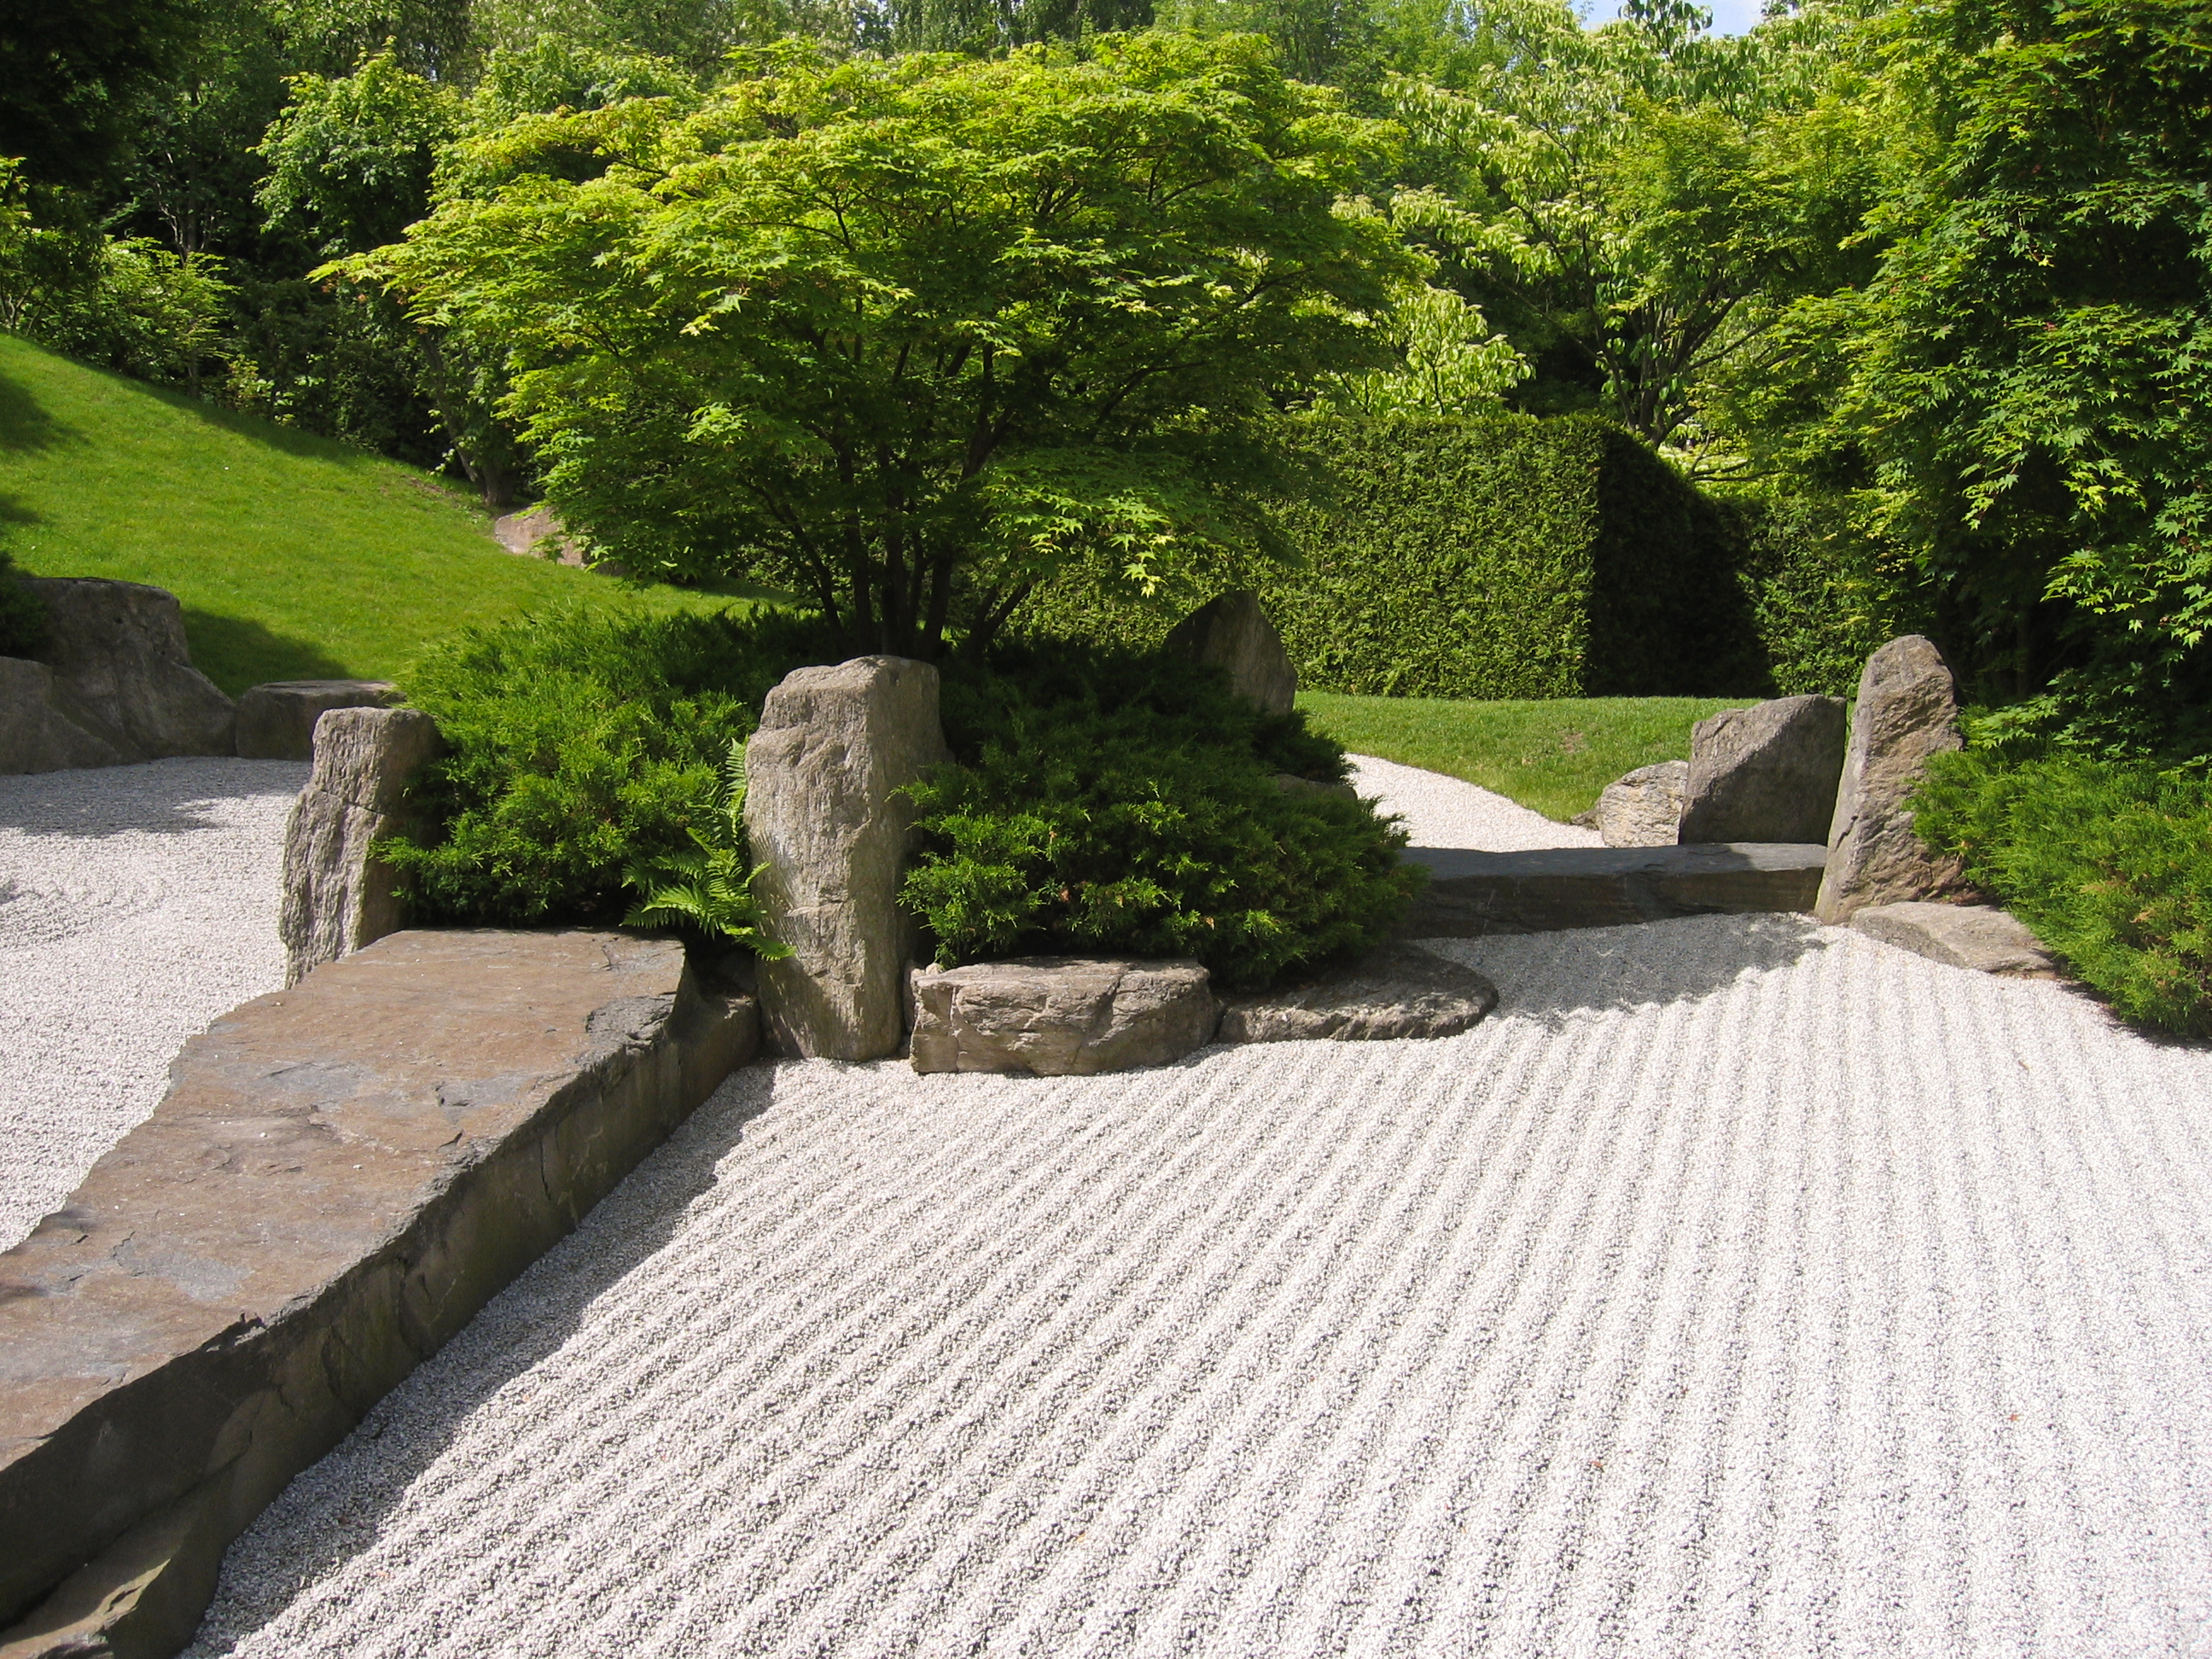 Garden design common garden stylesse landscape for Japanese style landscaping